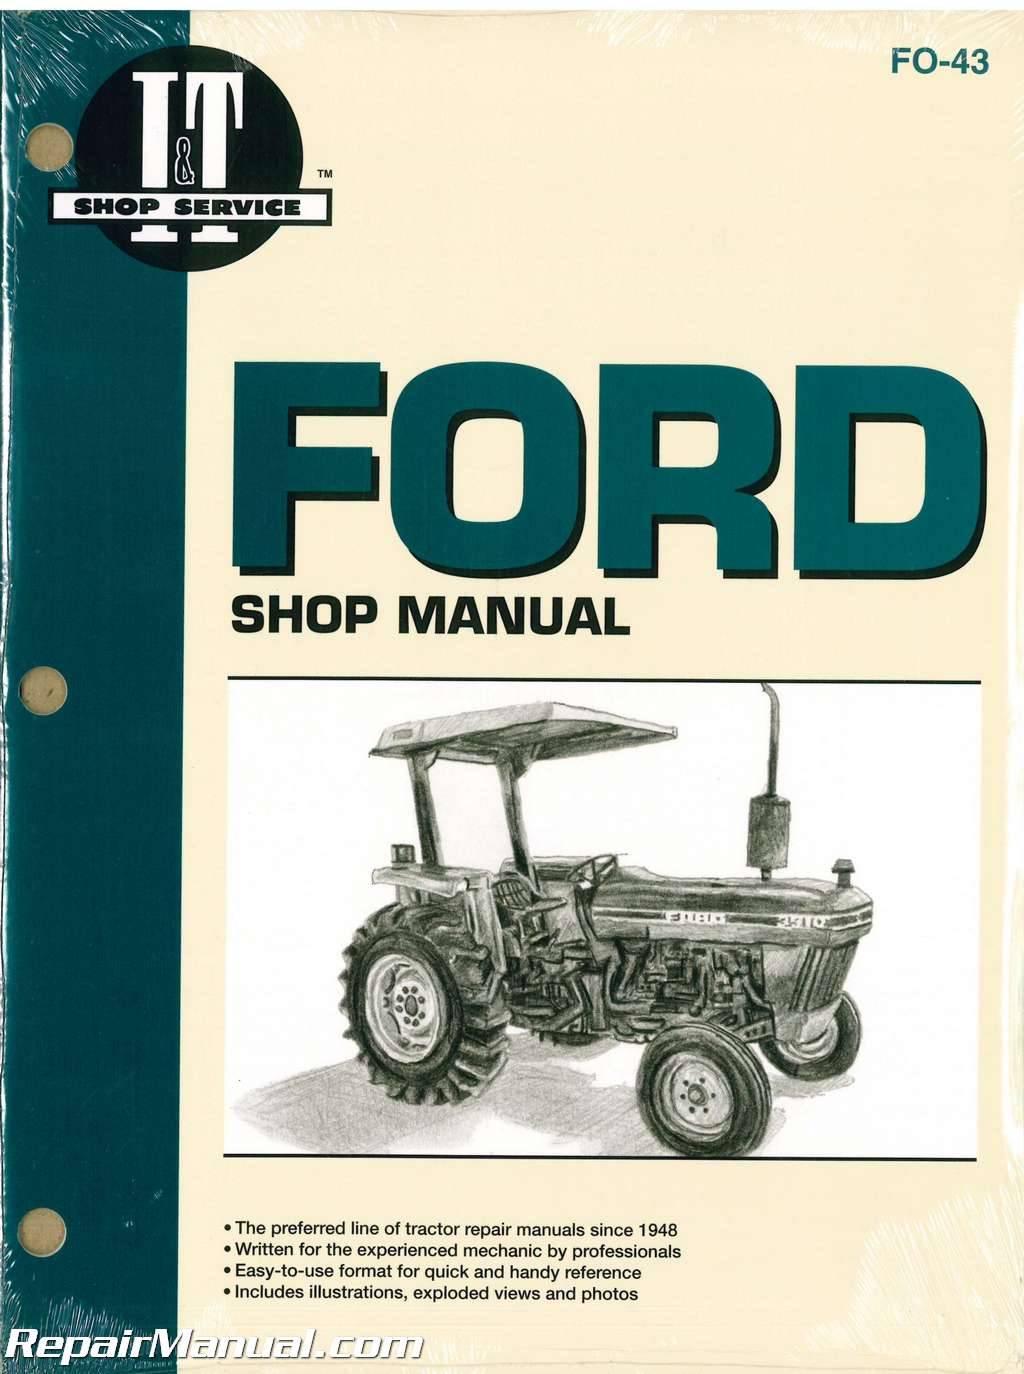 ford new holland 2810 2910 3910 tractor workshop manual rh repairmanual com Ford 9N Electrical Diagram Ford 9N Electrical Diagram